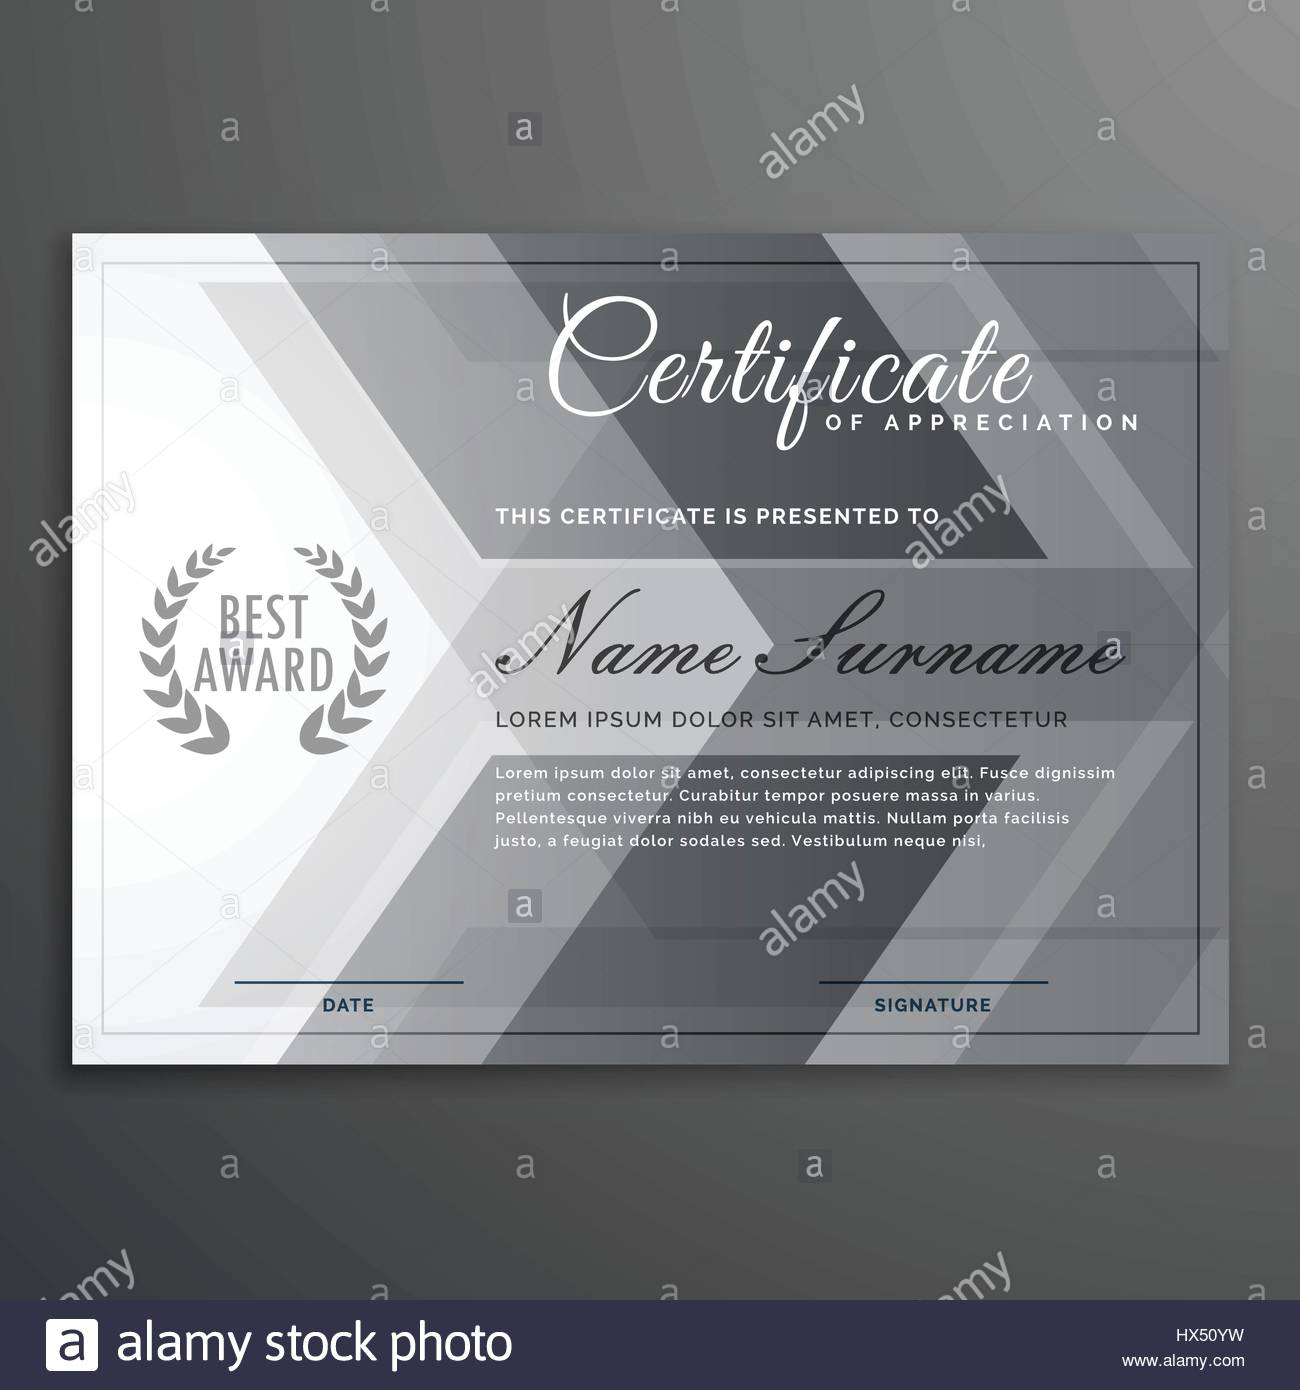 Ziemlich Anerkennungs Award Vorlage Fotos - Entry Level Resume ...